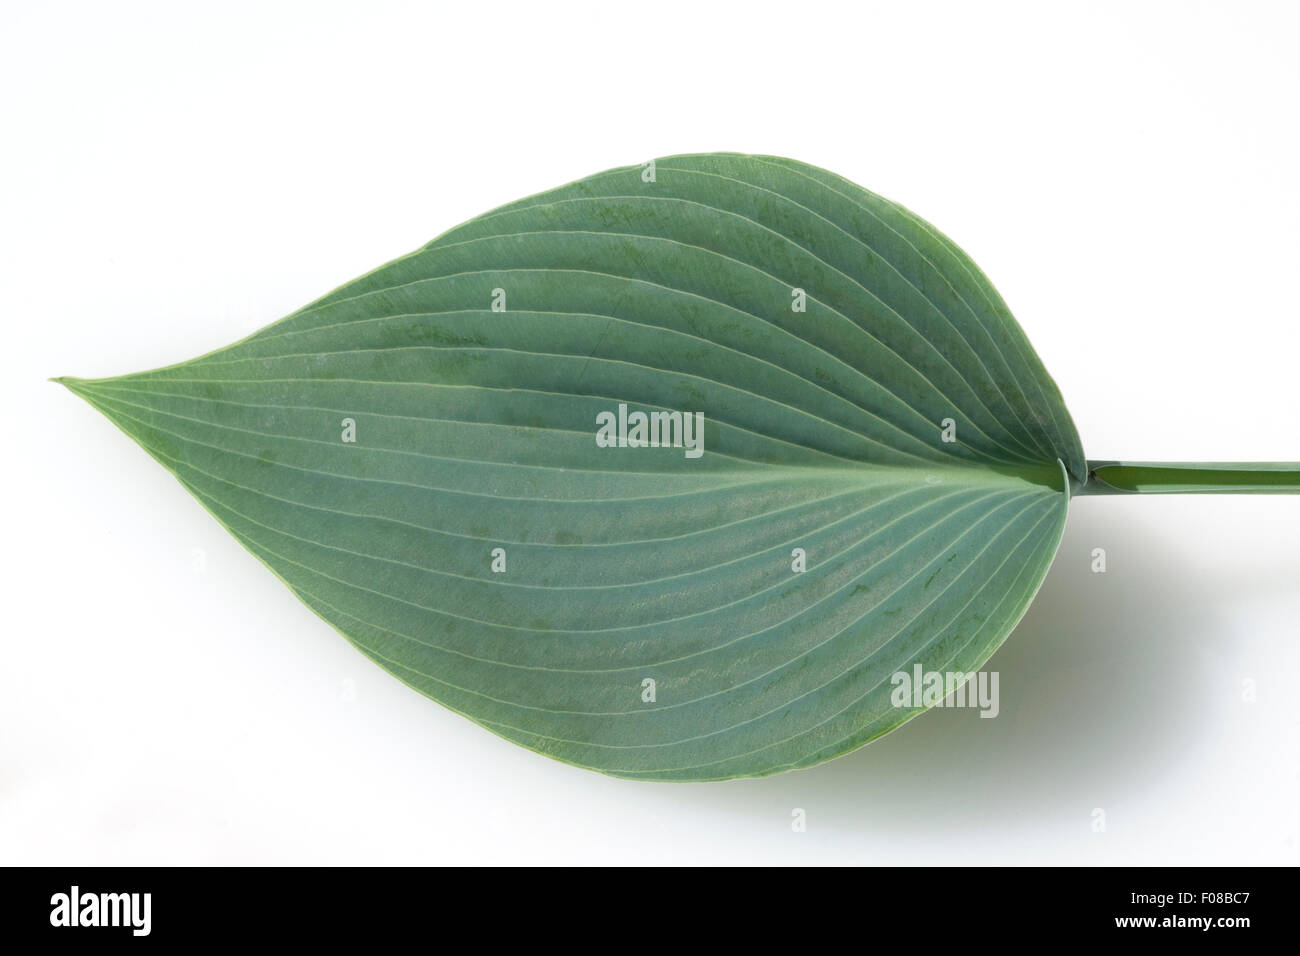 Hosta; Blaetter, leaves, Blaublattfunkie, Hosta, sieboldii Stock Photo